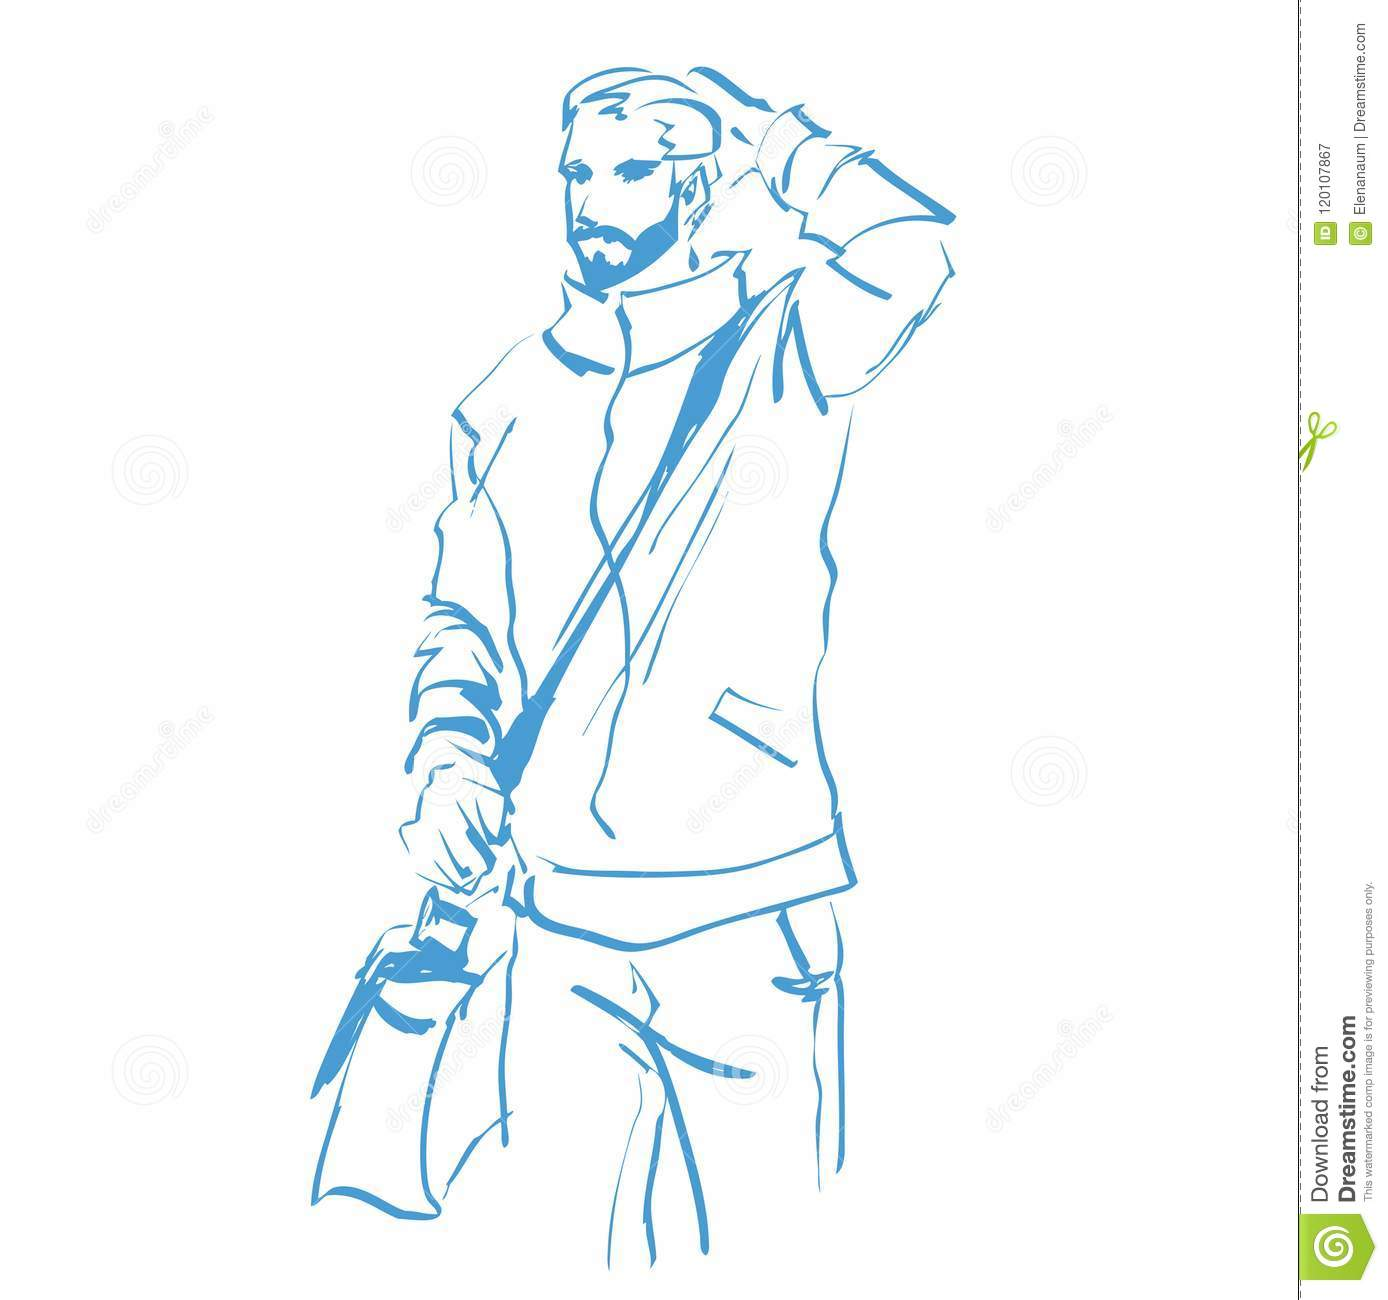 Contour silhouette of handsome fashionable man at full length standing person in casual fashion clothes vector hand drawing logo